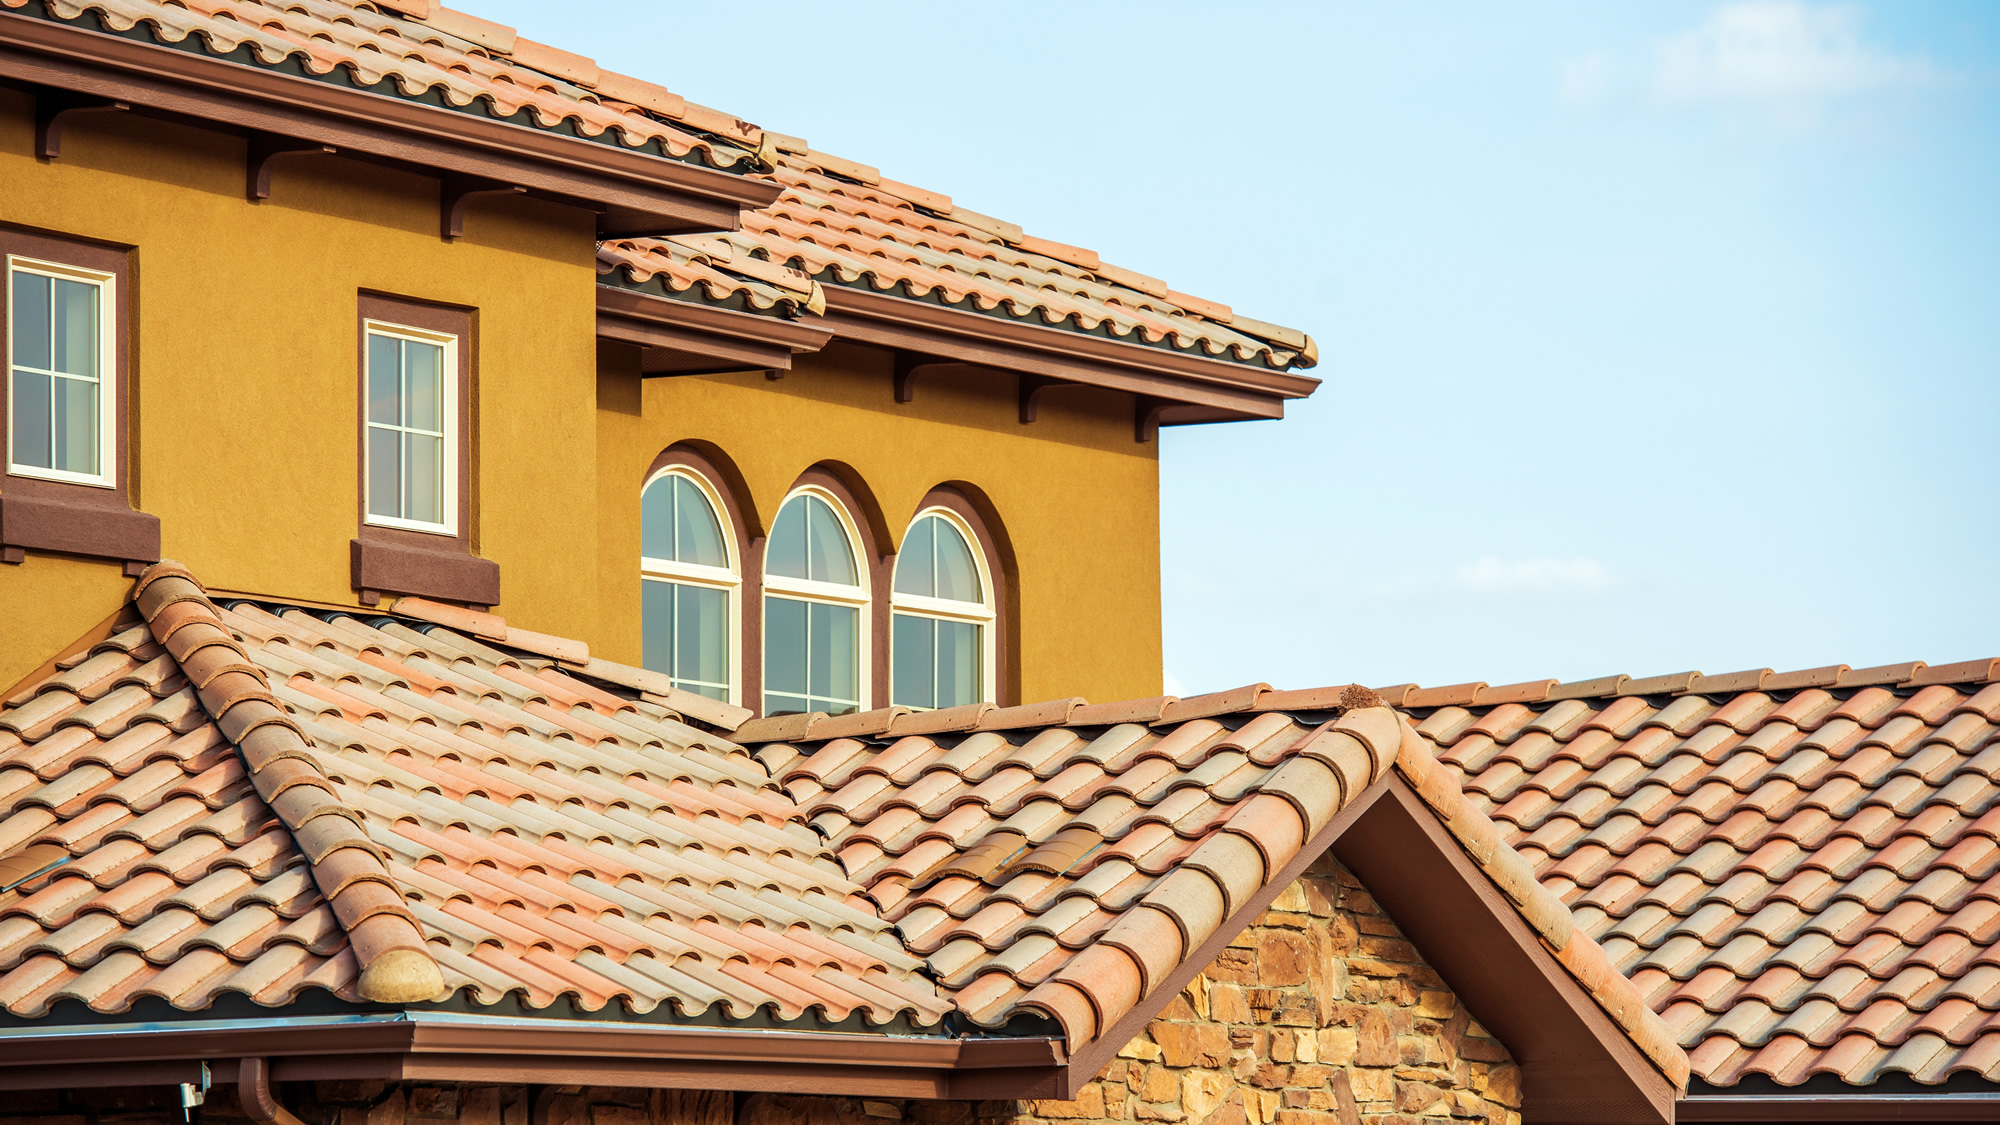 Tile roof being repaired